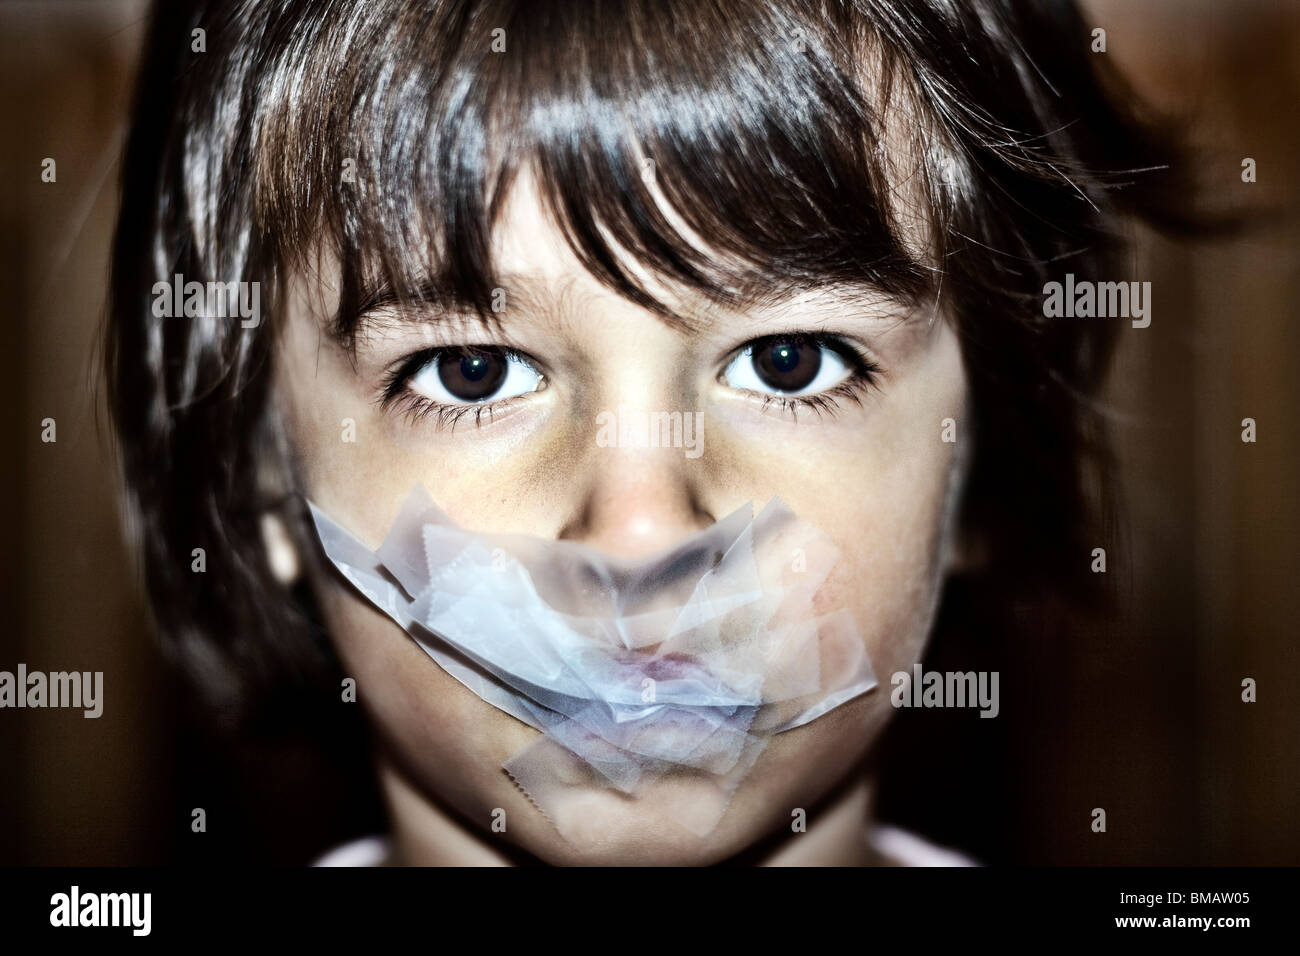 young boy gagged with tape - Stock Image